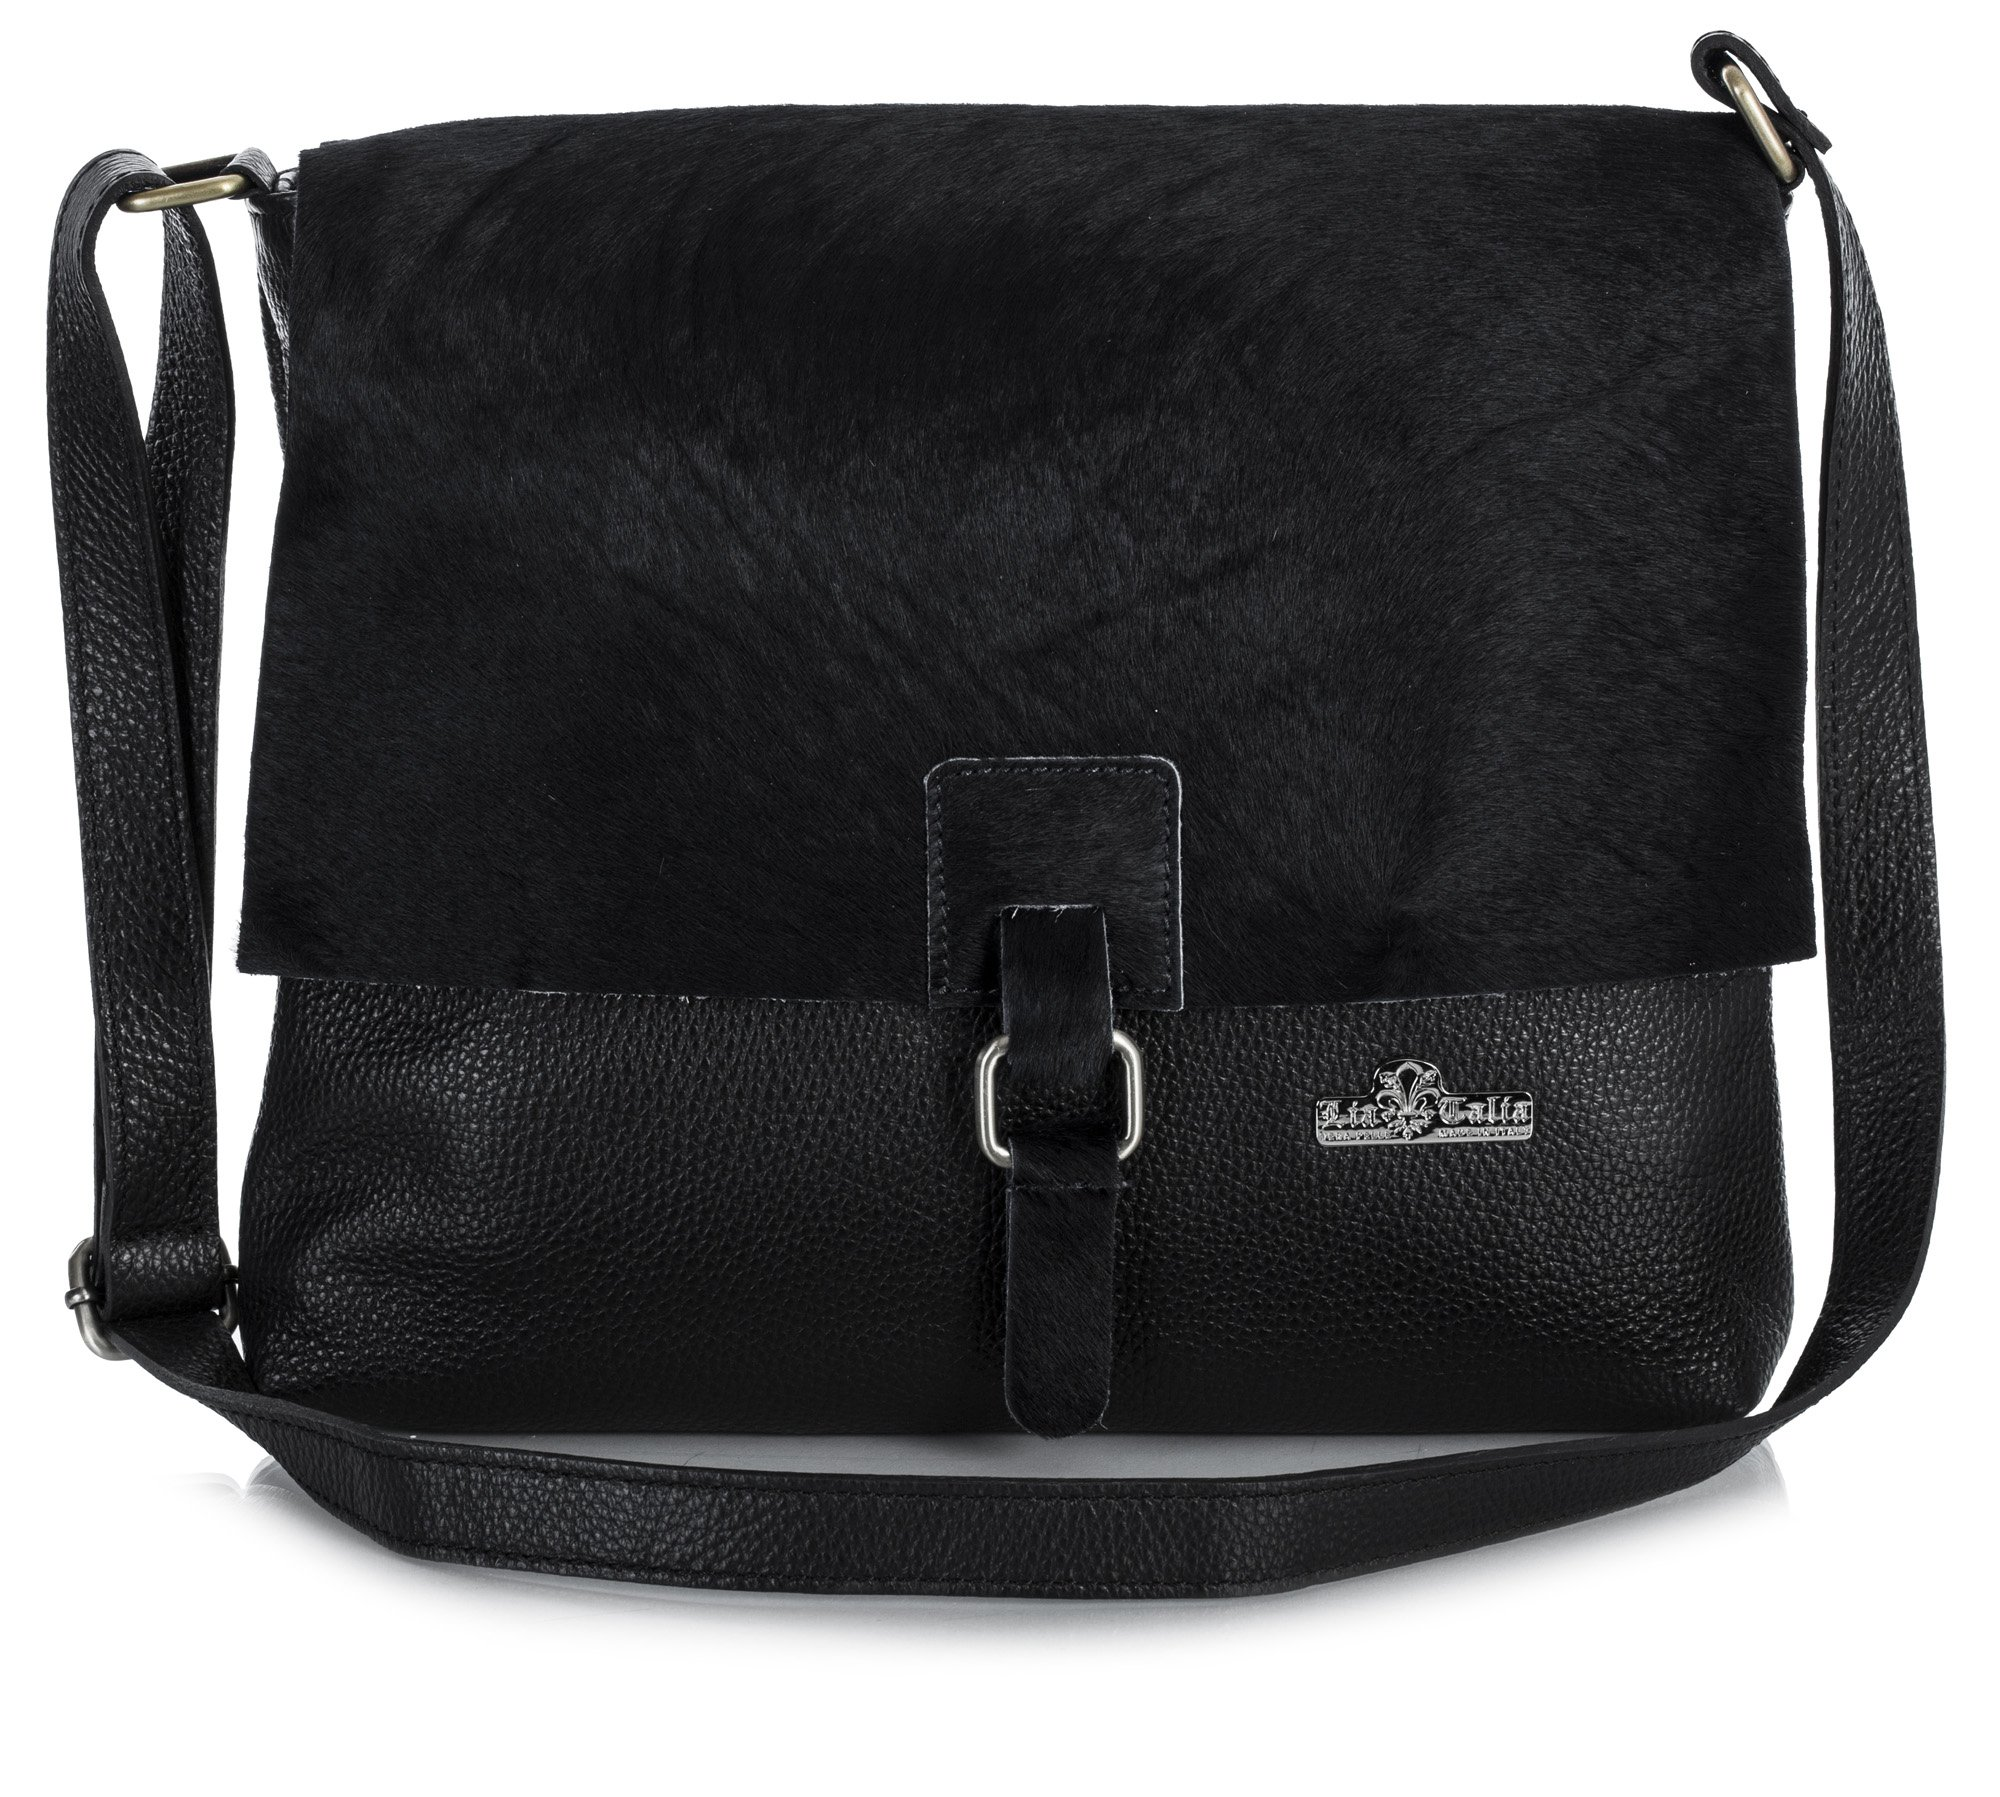 LiaTalia Genuine Italian Leather Buckle Effect Crossbody Messenger Bag With Protective Dust Bag - Kate (Black - Black)